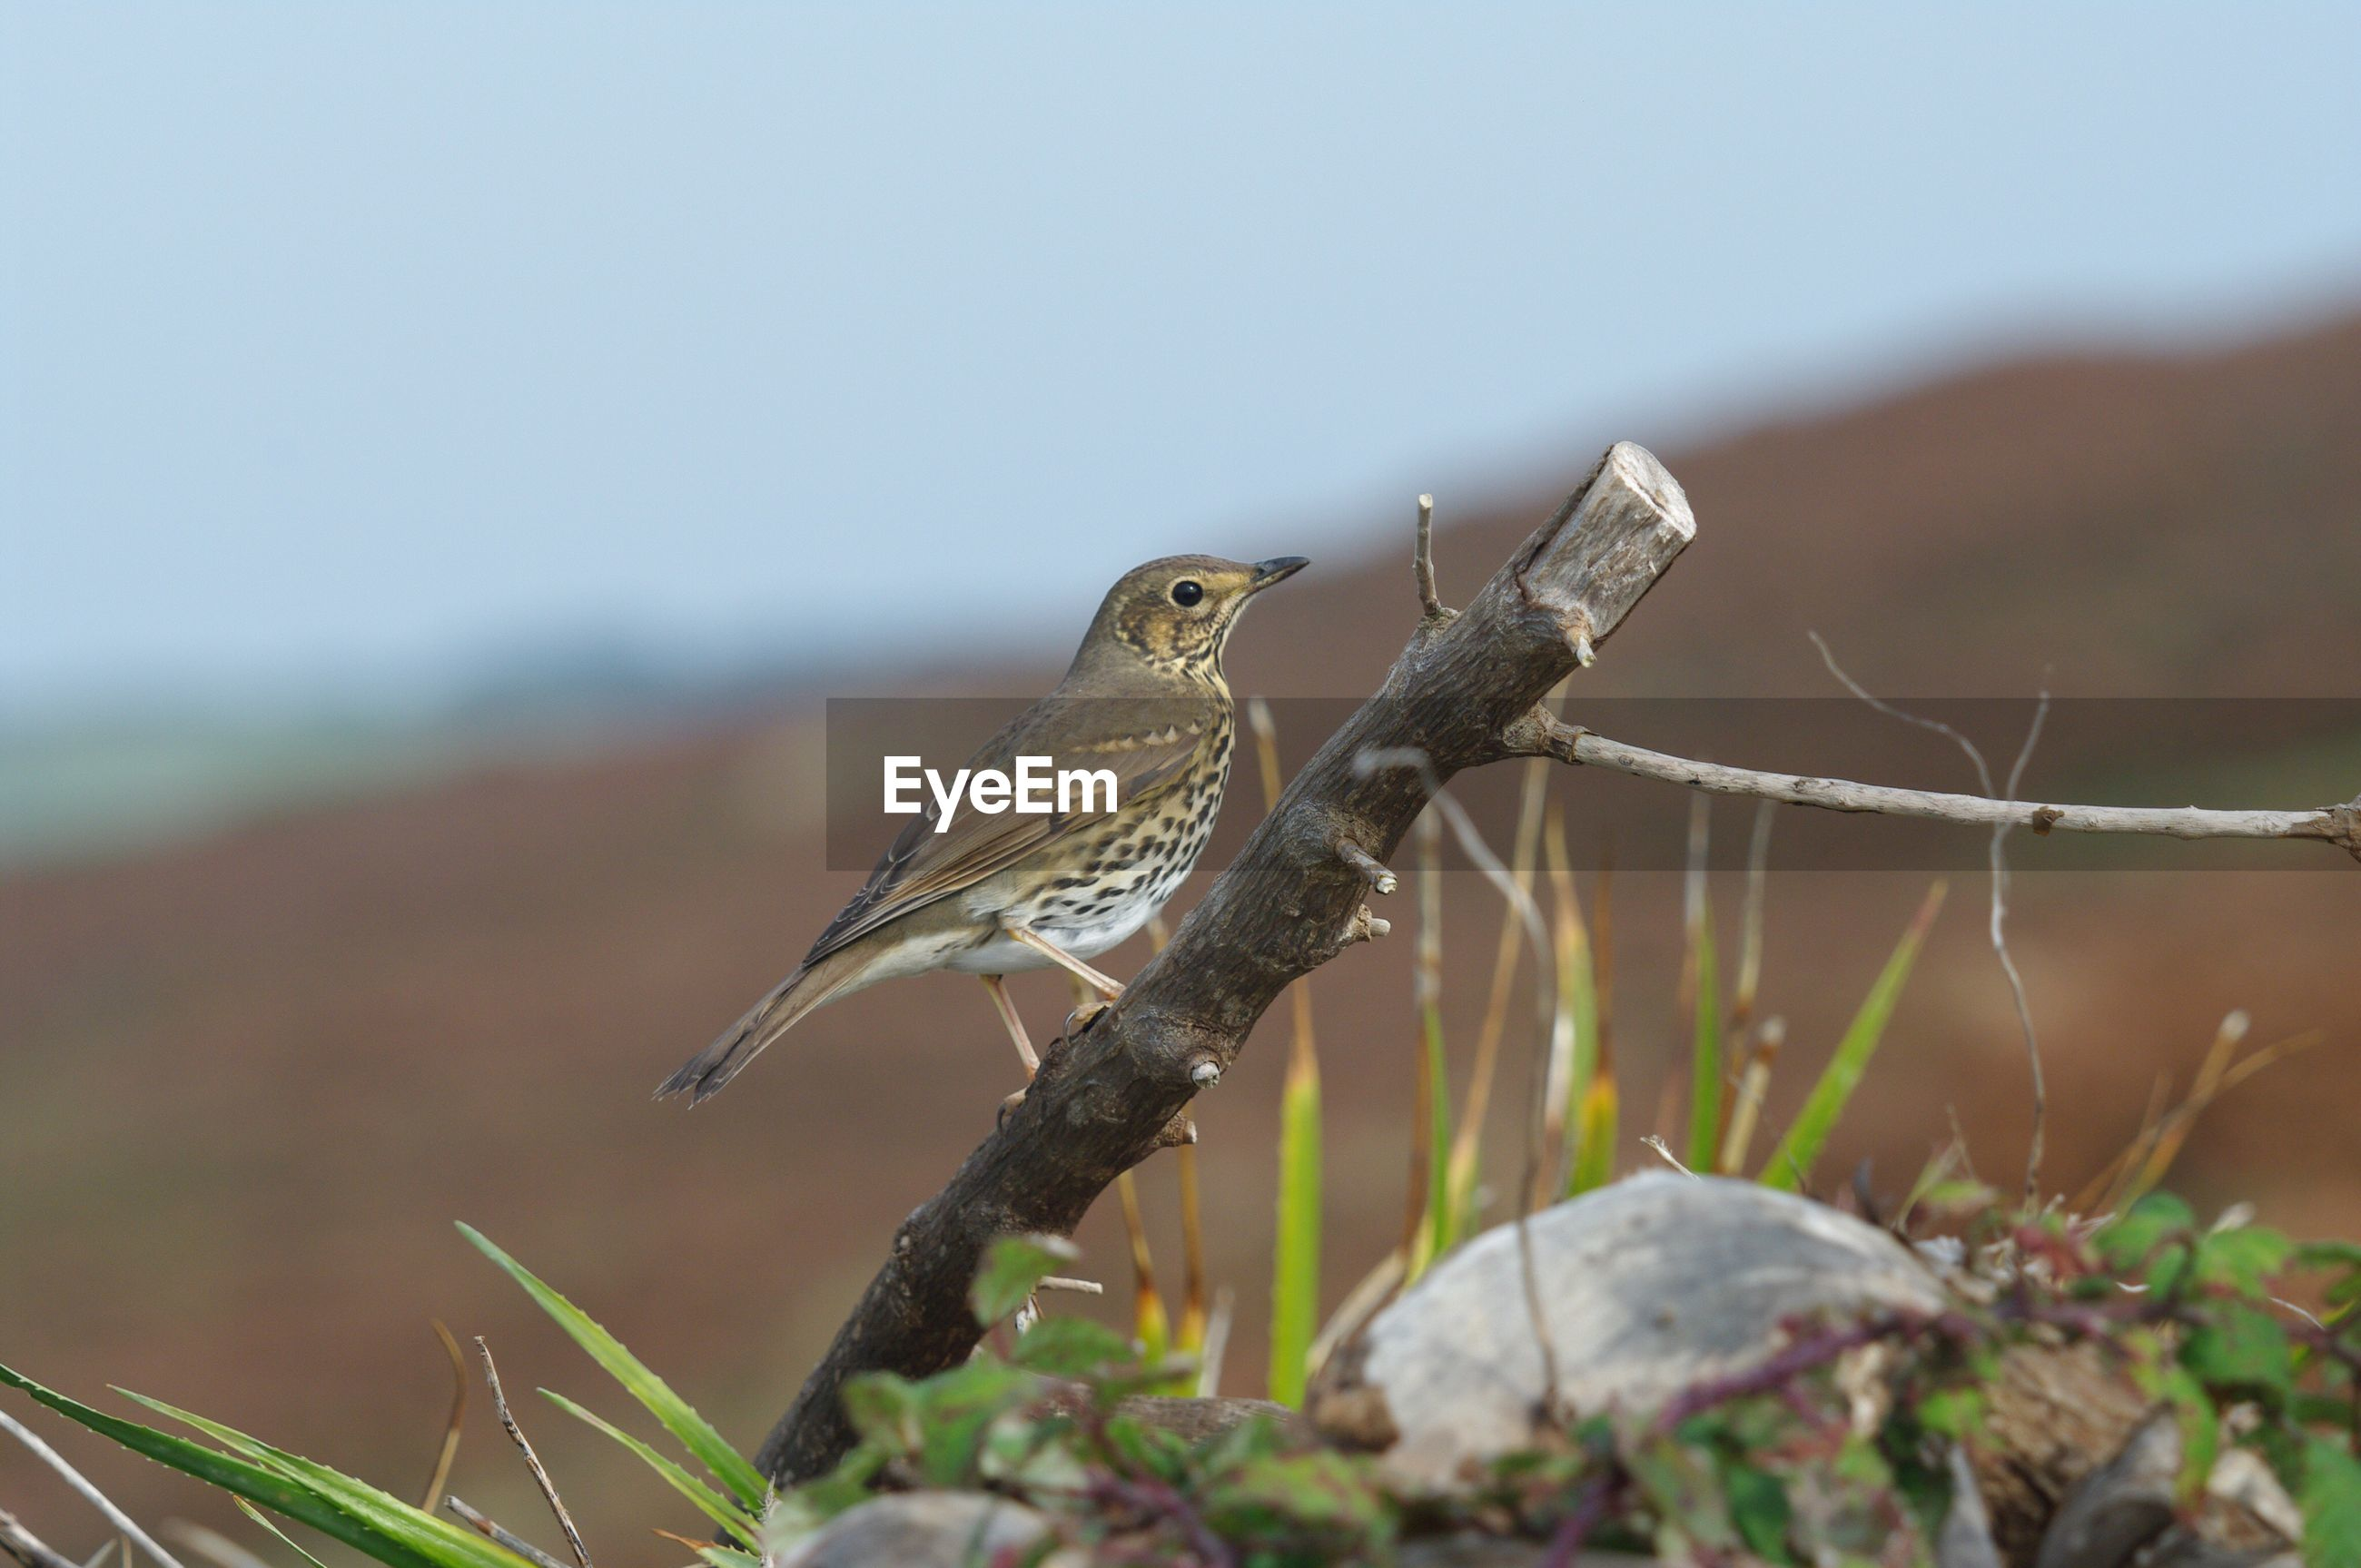 animal themes, one animal, animals in the wild, bird, wildlife, perching, focus on foreground, close-up, zoology, plant, nature, sparrow, robin, flying, animal wing, beauty in nature, no people, avian